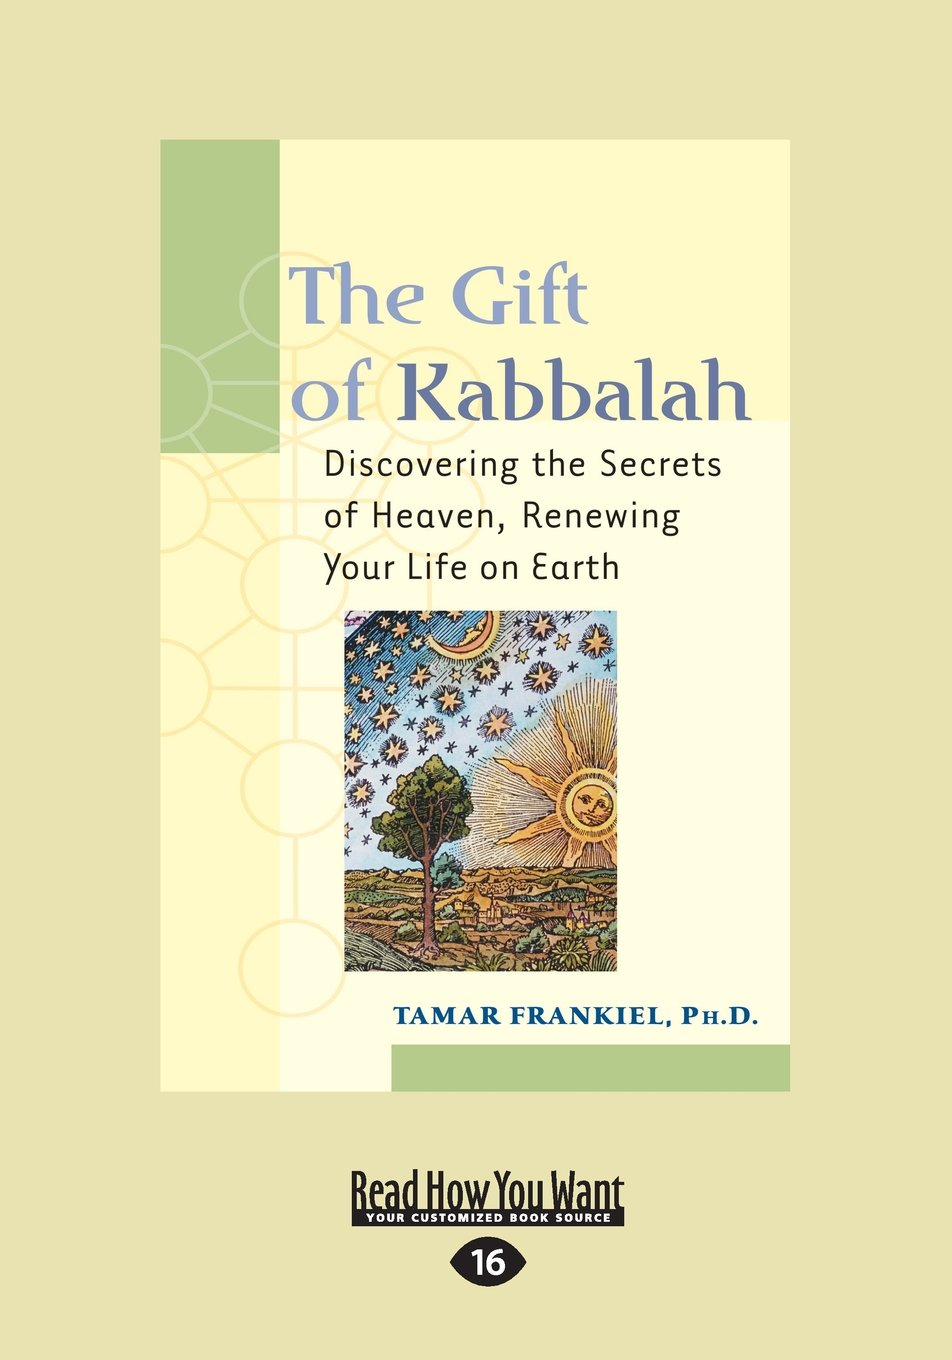 the-gift-of-kabbalah-discovering-the-secrets-of-heaven-renewing-your-life-on-earth